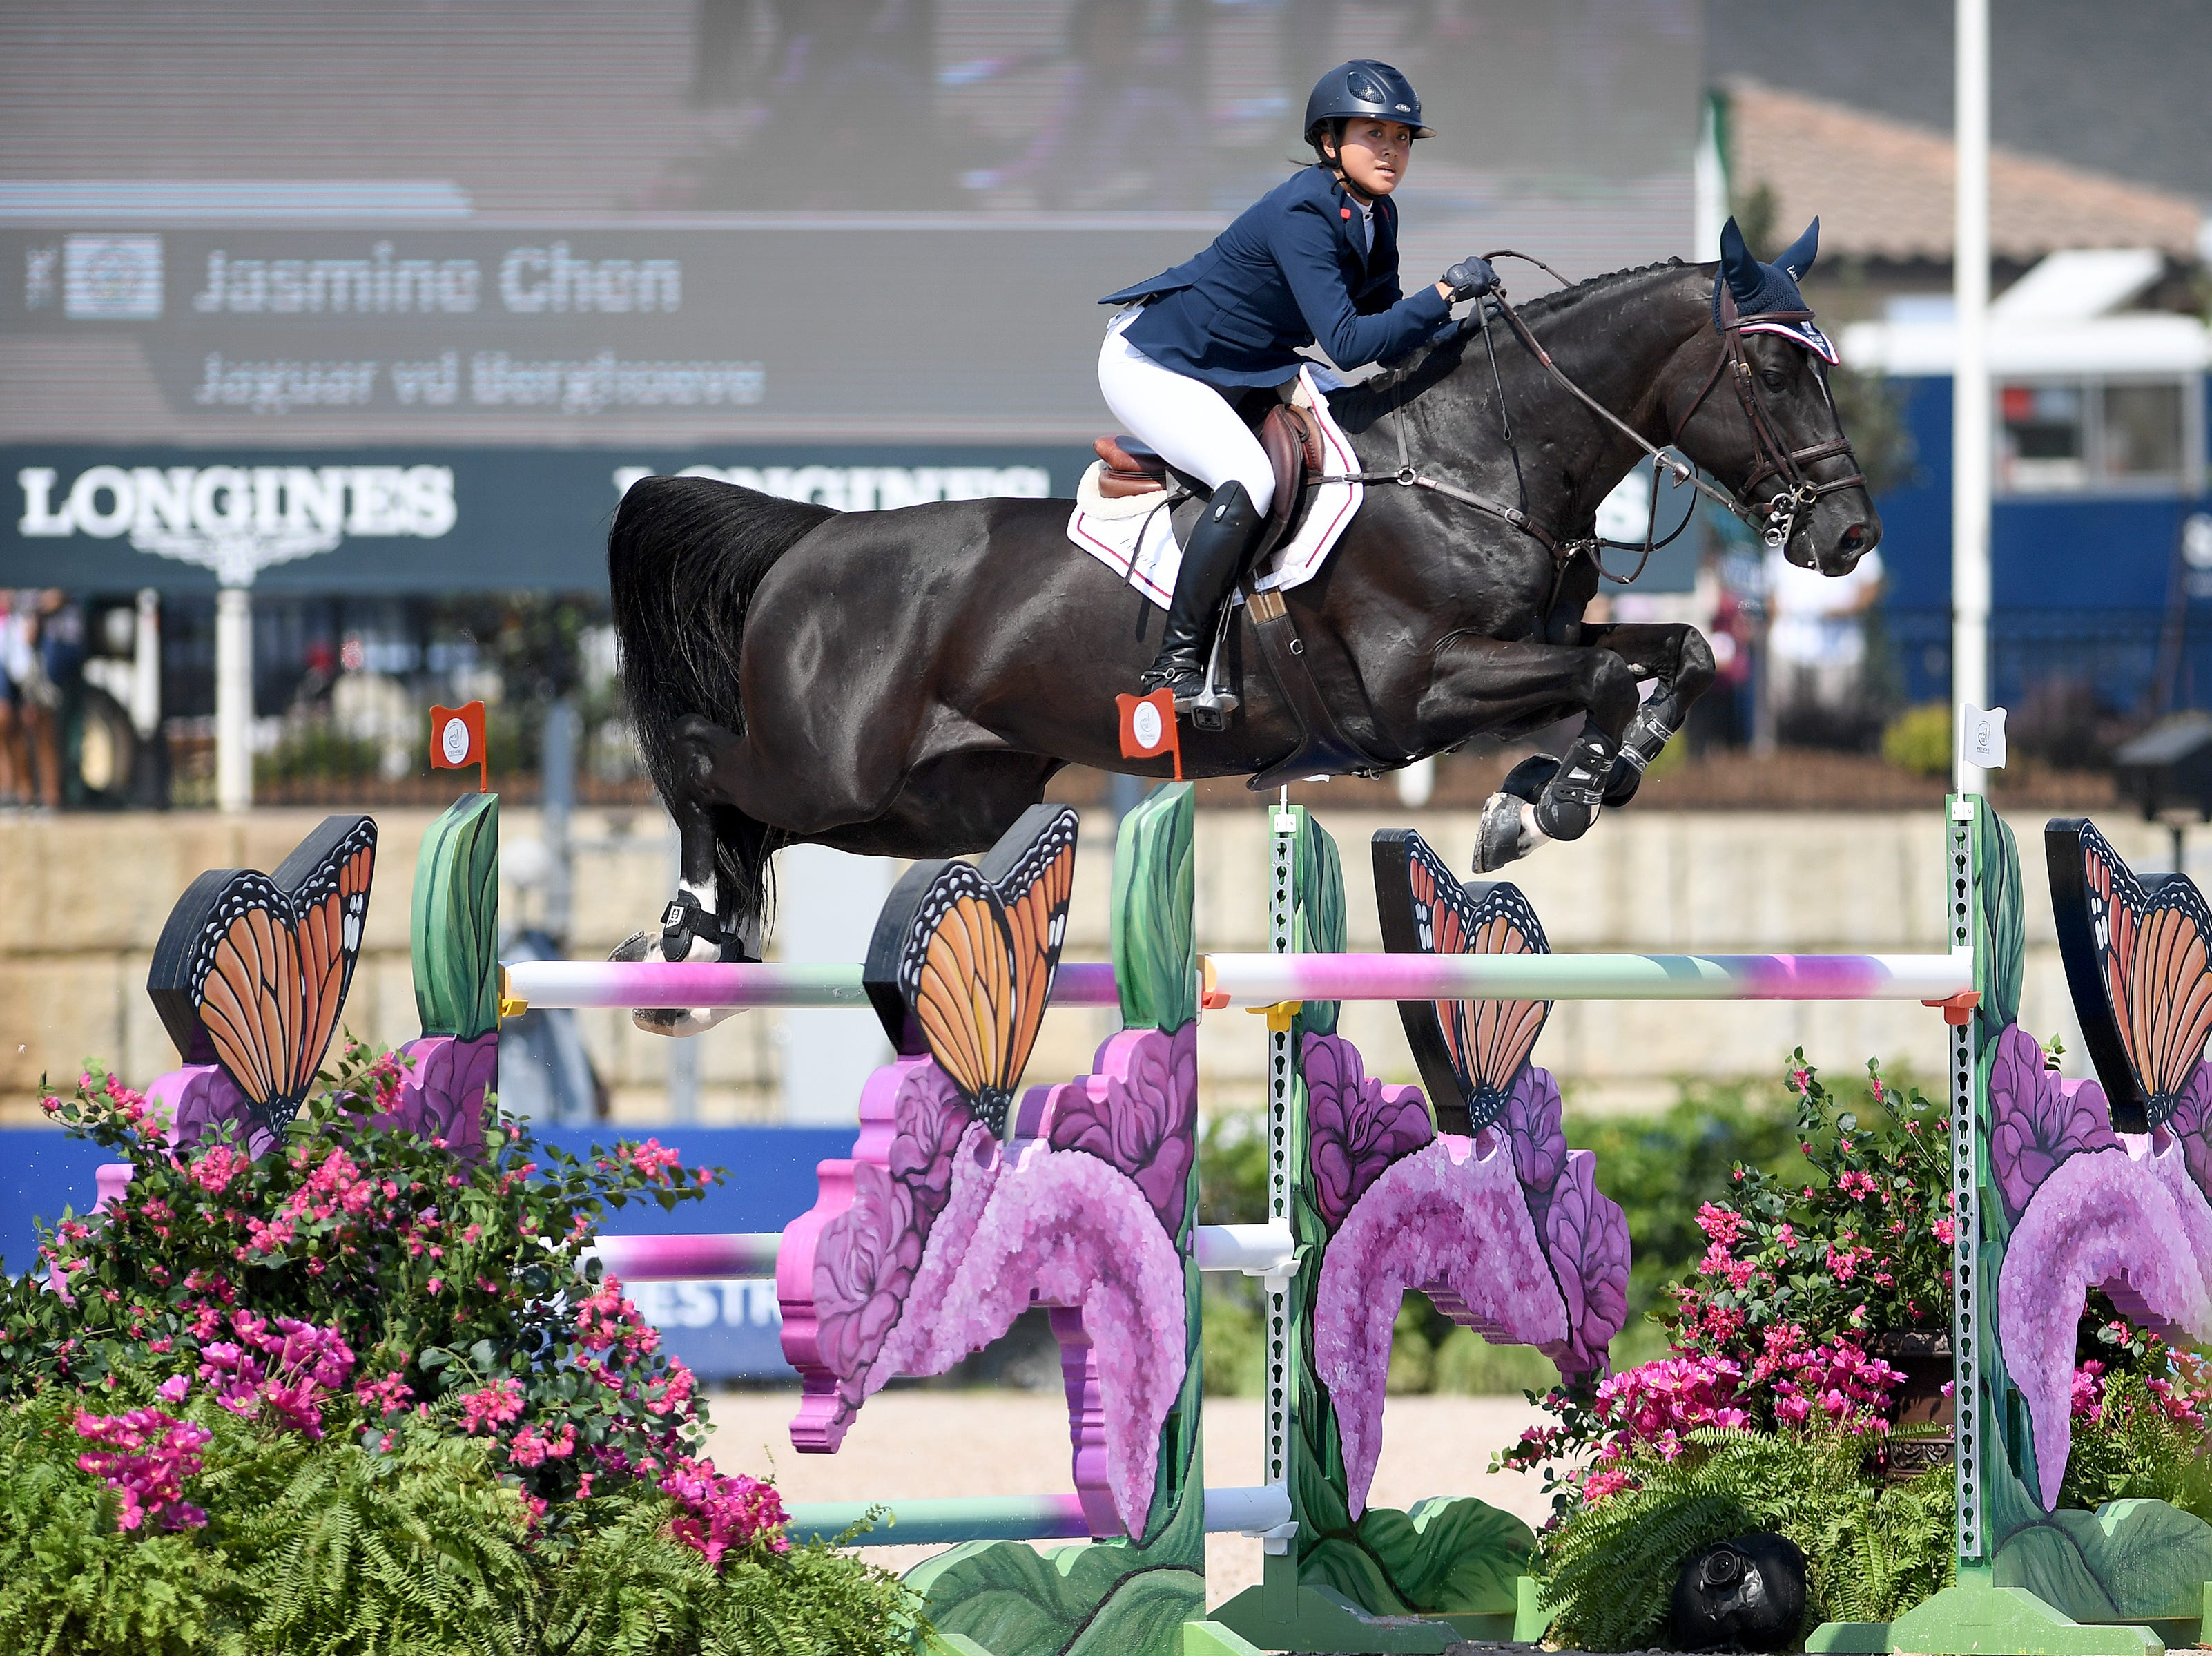 Taipei's Jasmine Chen, on Jaguar vd Berghoeve, competes in the team jumping competition of the FEI World Equestrian Games at the Tryon International Equestrian Center on Sept. 20, 2018.